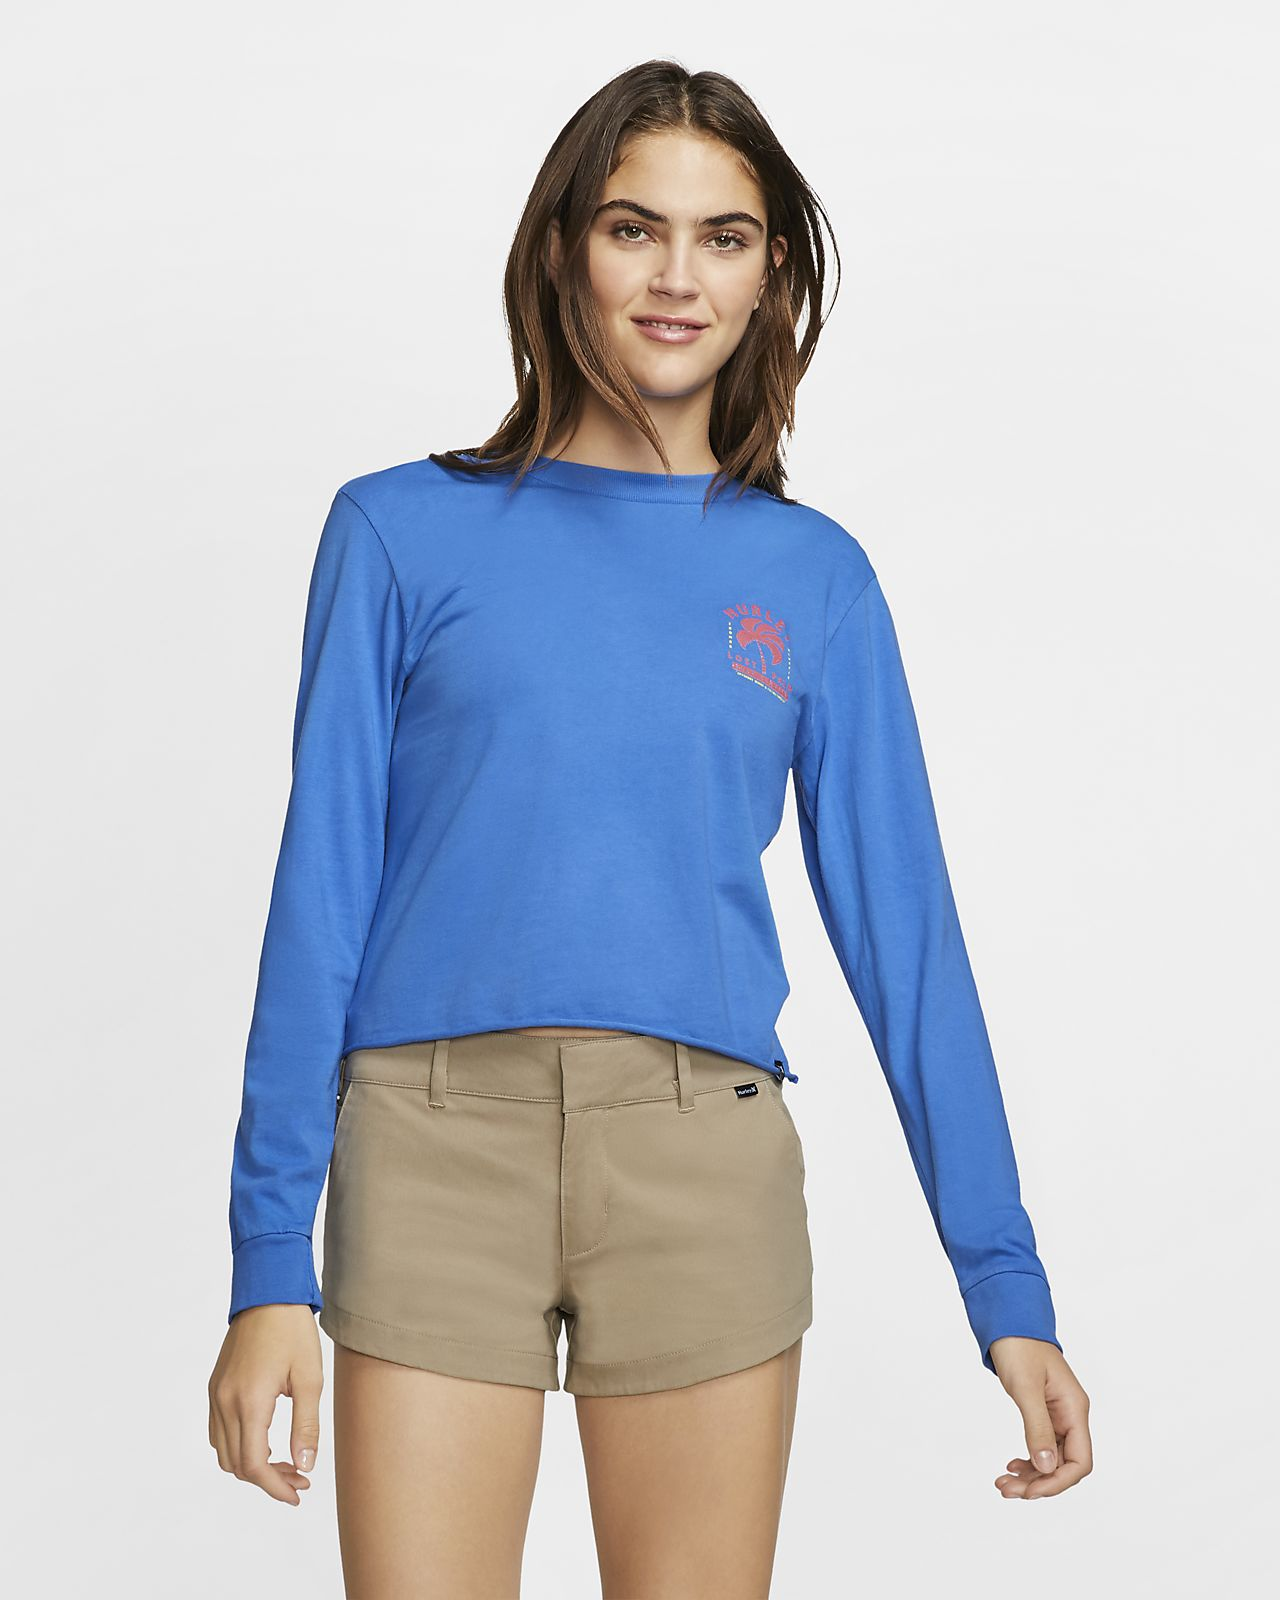 Hurley Palms Away Women's Long-Sleeve Top